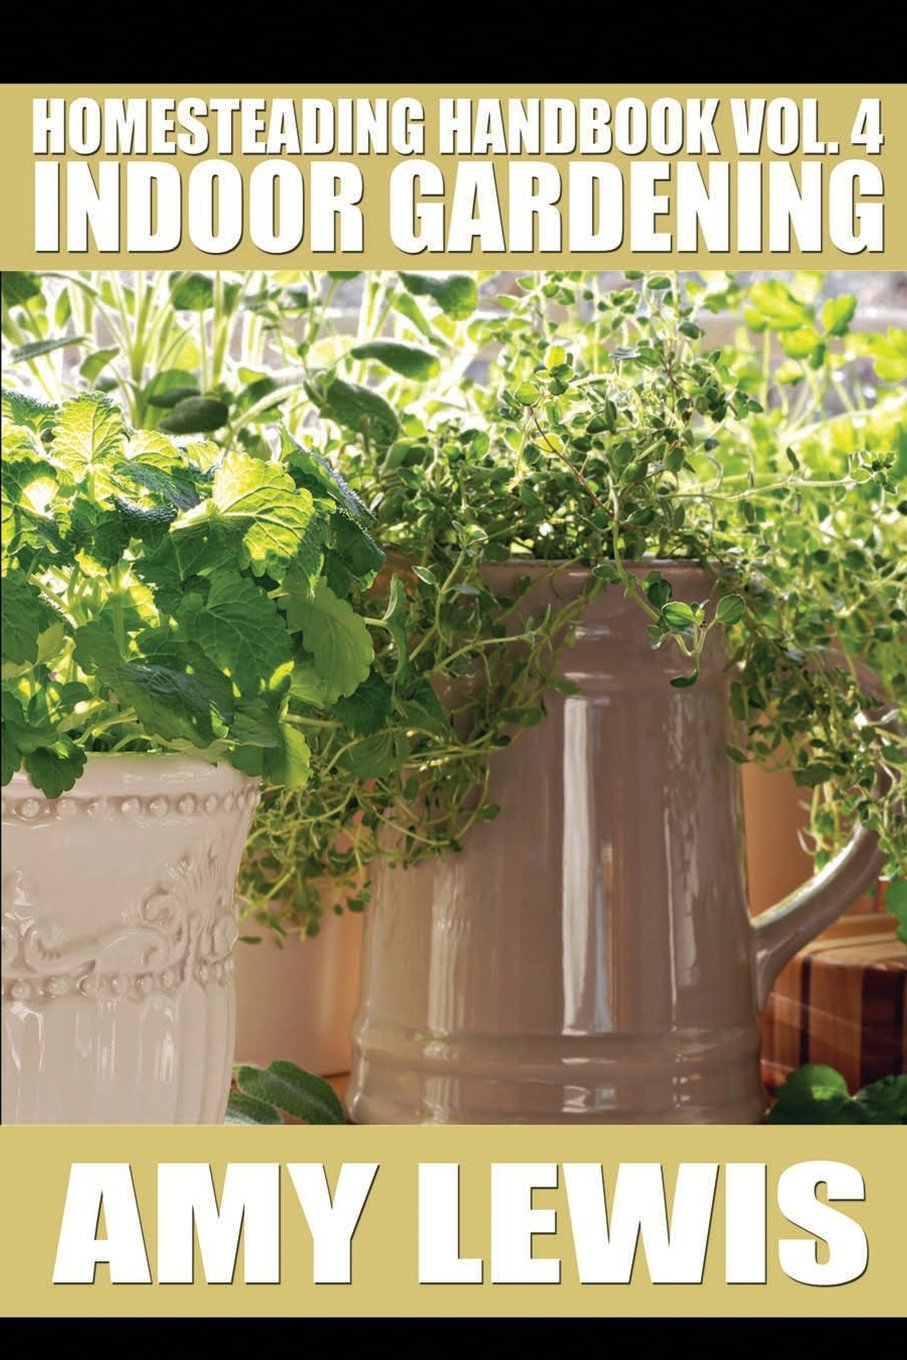 Homesteading Handbook vol. 4: Indoor Gardening (Homesteading Handbooks) (Volume 4)